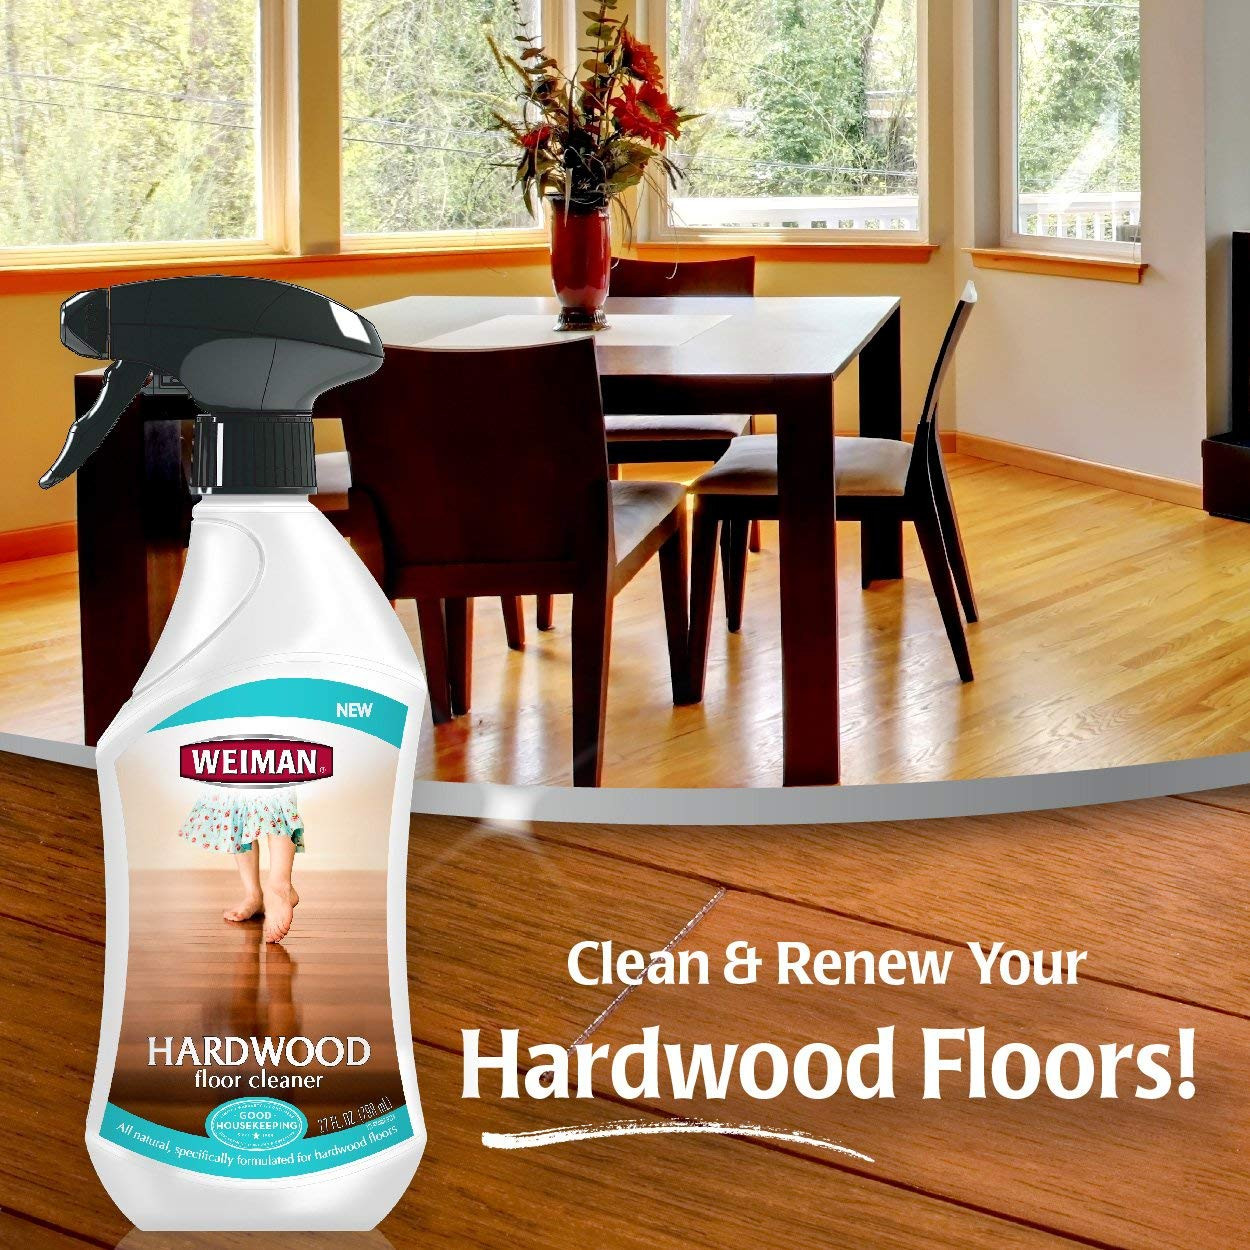 should i put hardwood floors in my kitchen of amazon com weiman hardwood floor cleaner surface safe no harsh in amazon com weiman hardwood floor cleaner surface safe no harsh scent safe for use around kids and pets residue free 27 oz trigger home kitchen